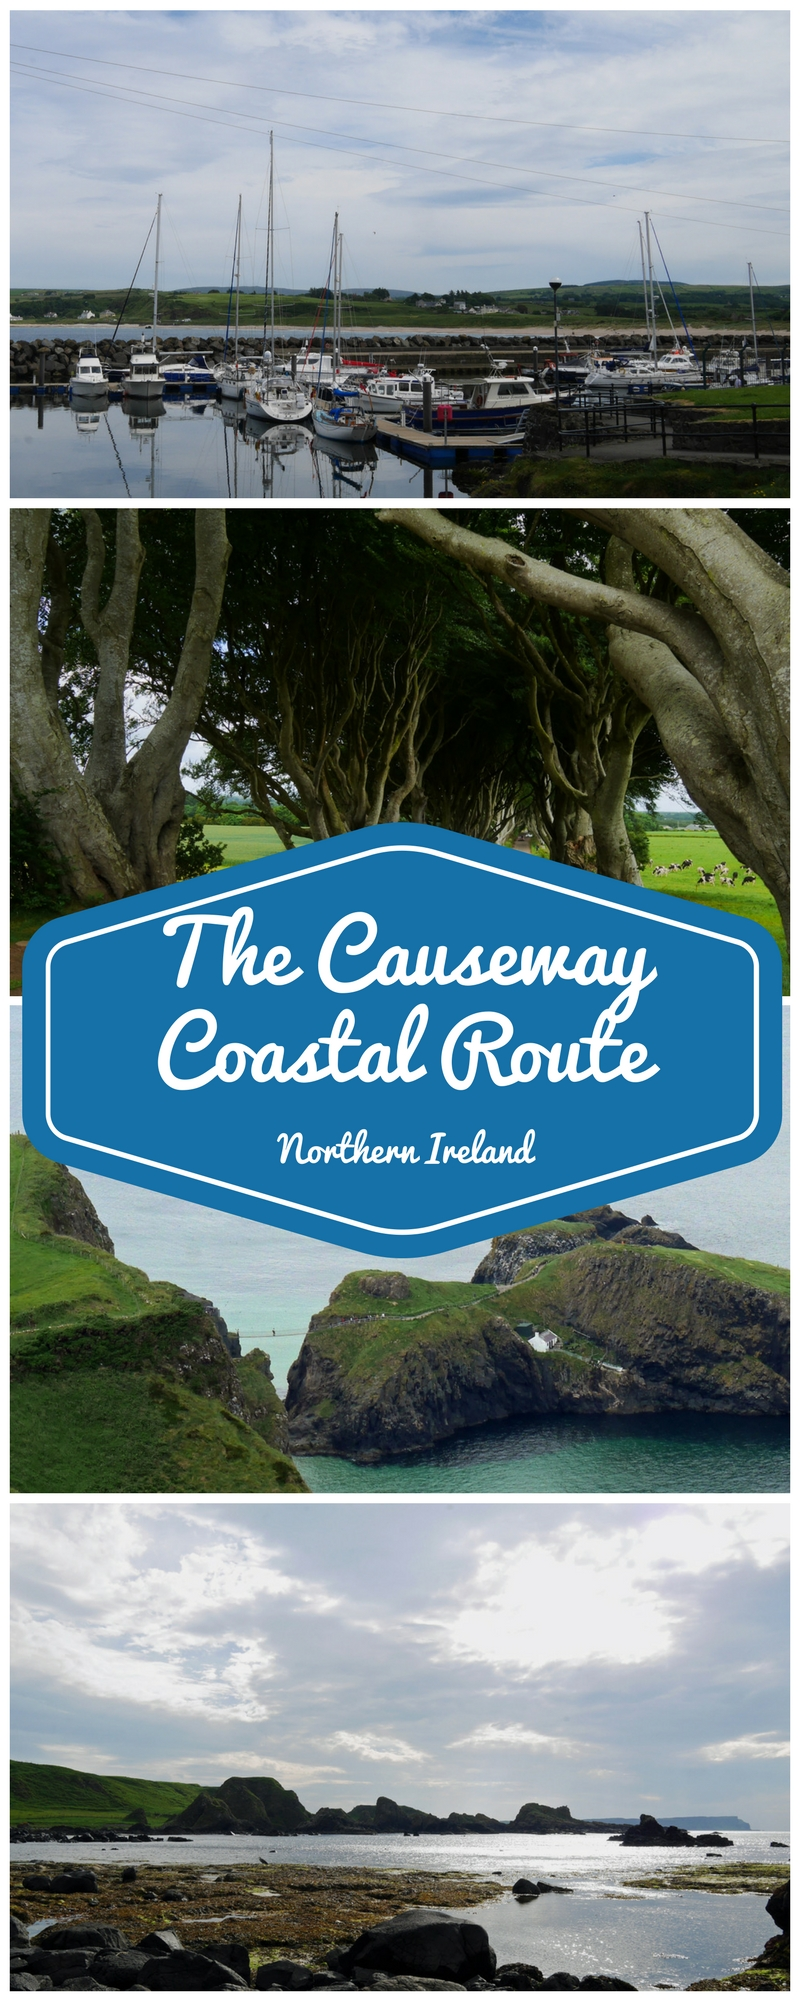 Northern Ireland - The Causeway Coastal Route, Game of Thrones Locations and more in Northern Ireland